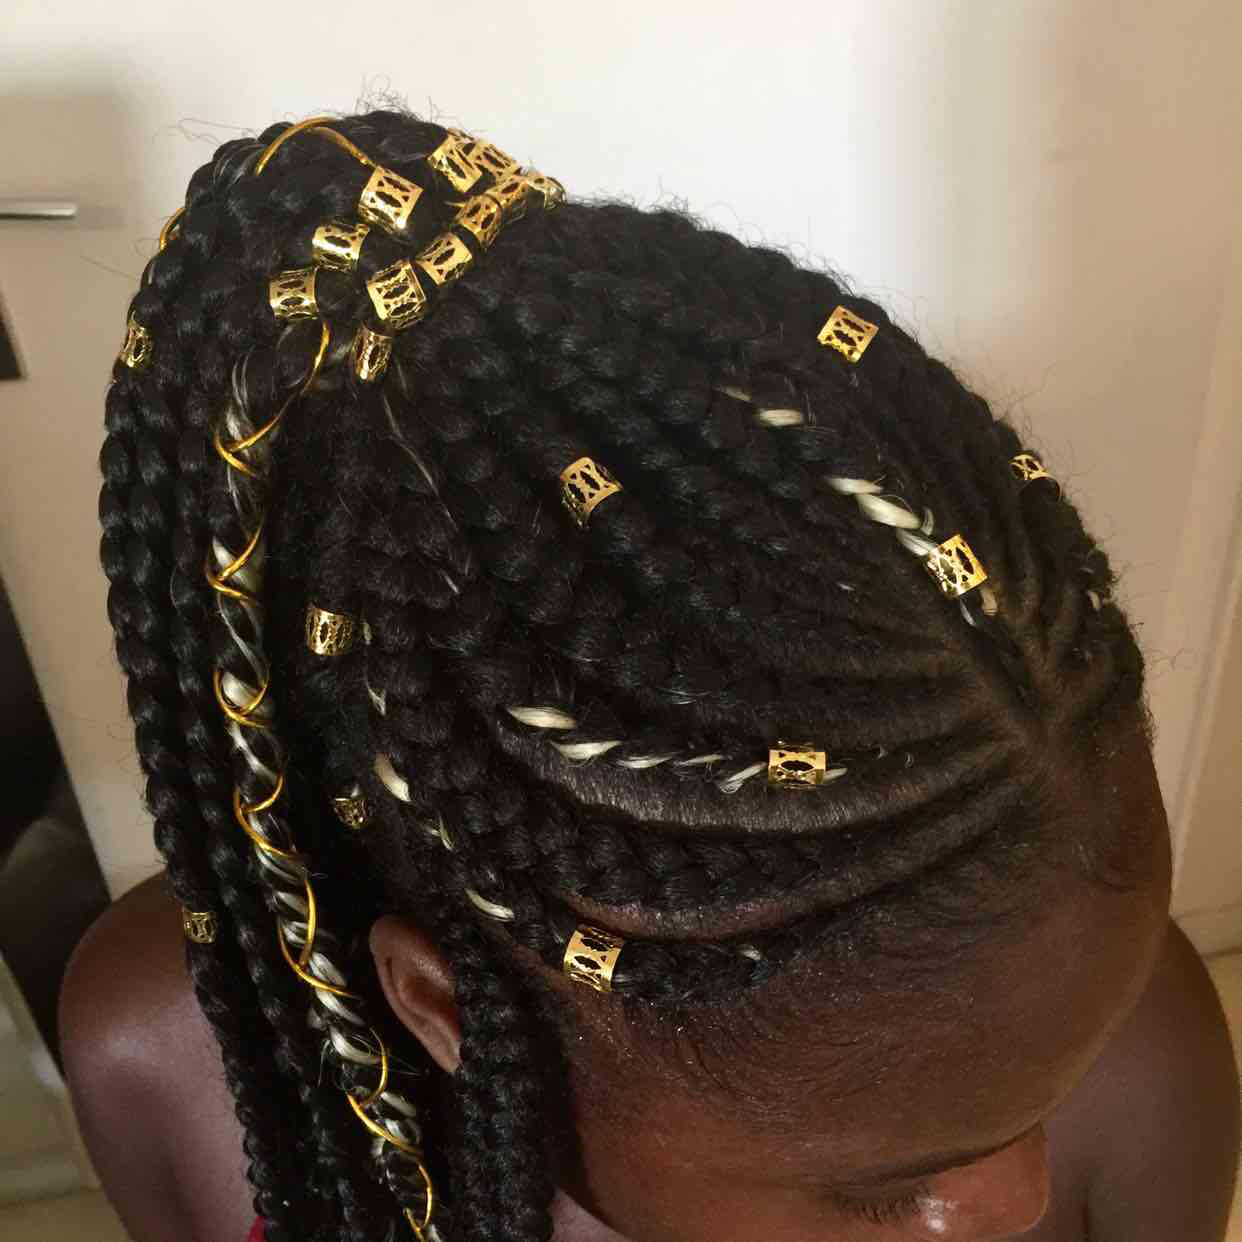 salon de coiffure afro tresse tresses box braids crochet braids vanilles tissages paris 75 77 78 91 92 93 94 95 UTFOMHZZ